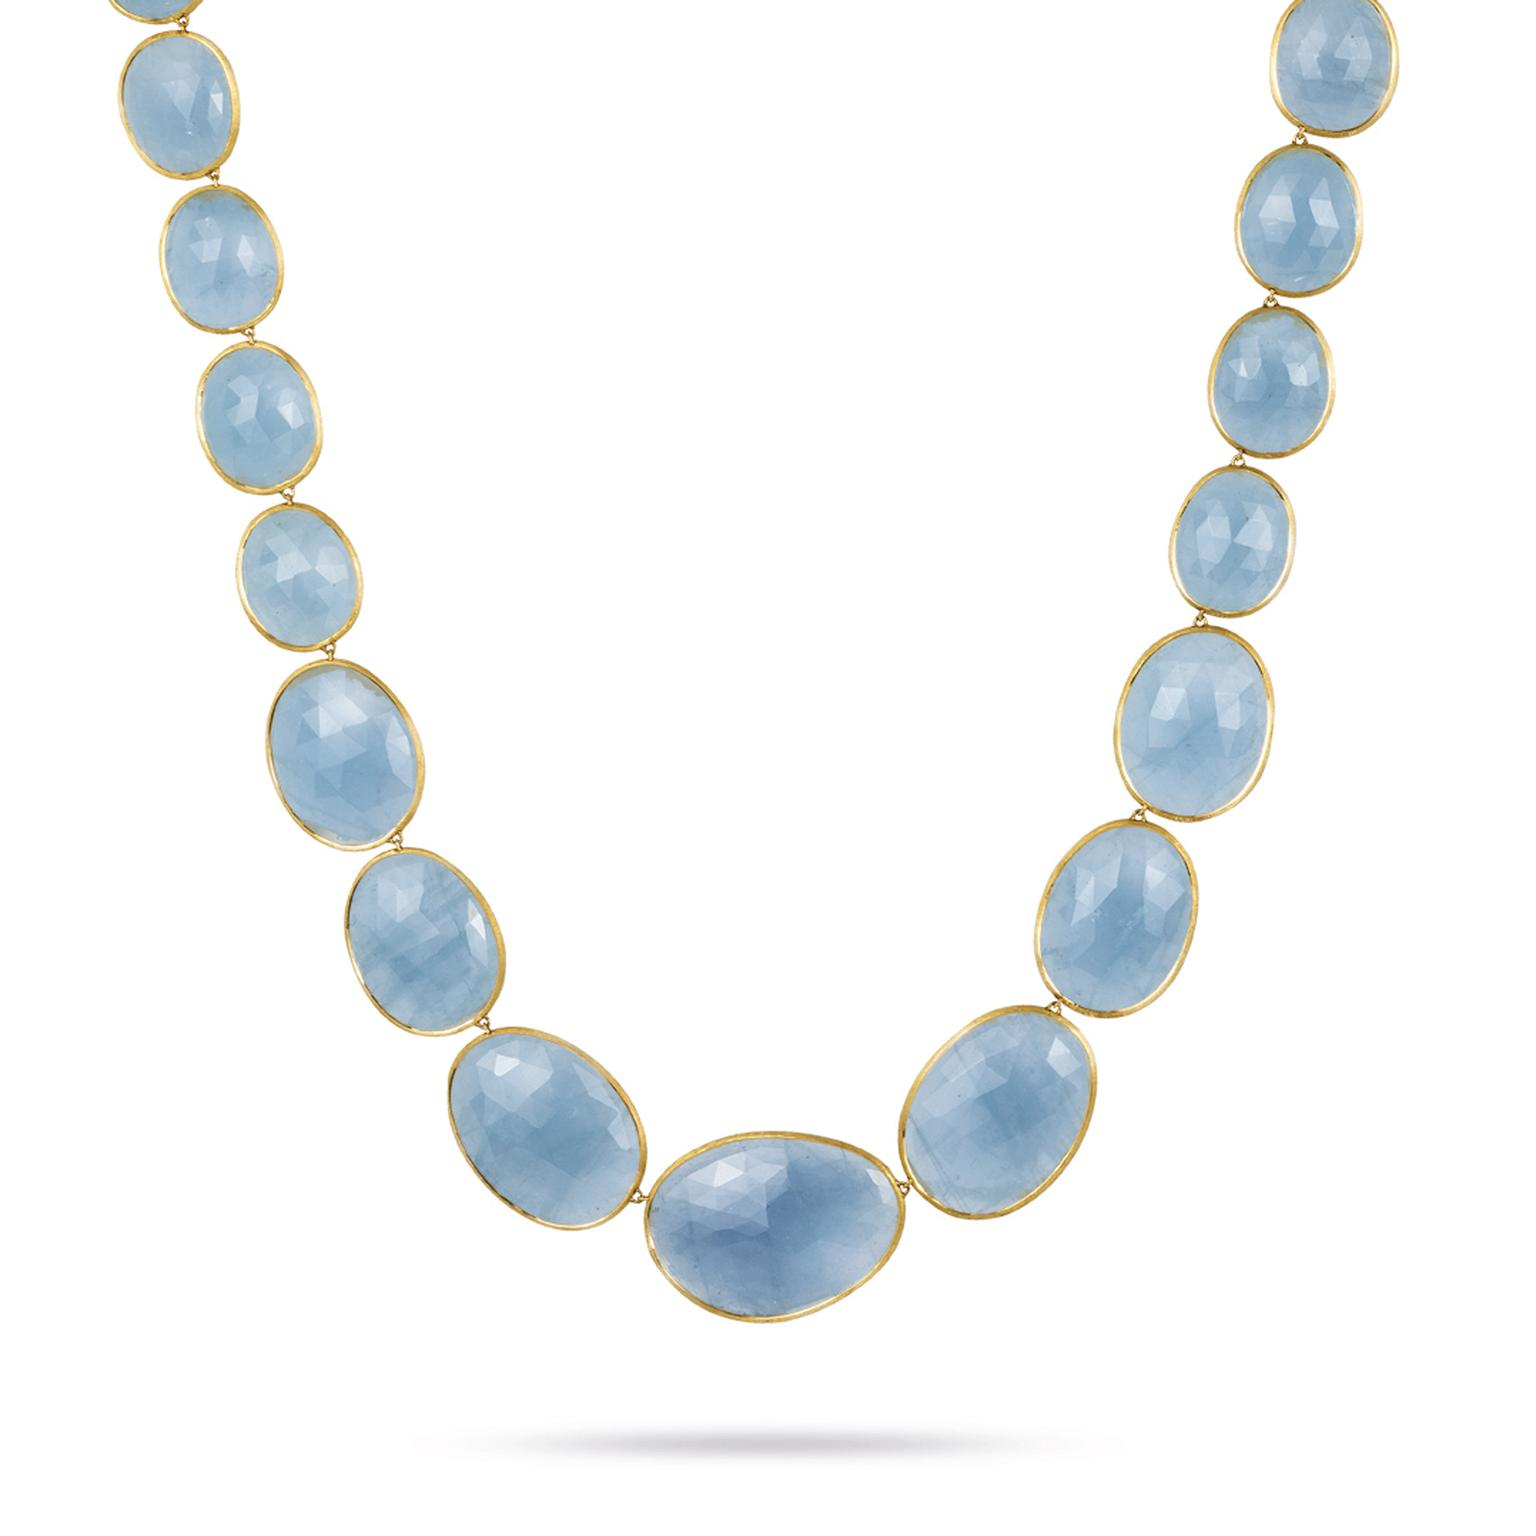 Marco Bicego Lunaria aquamarine necklace